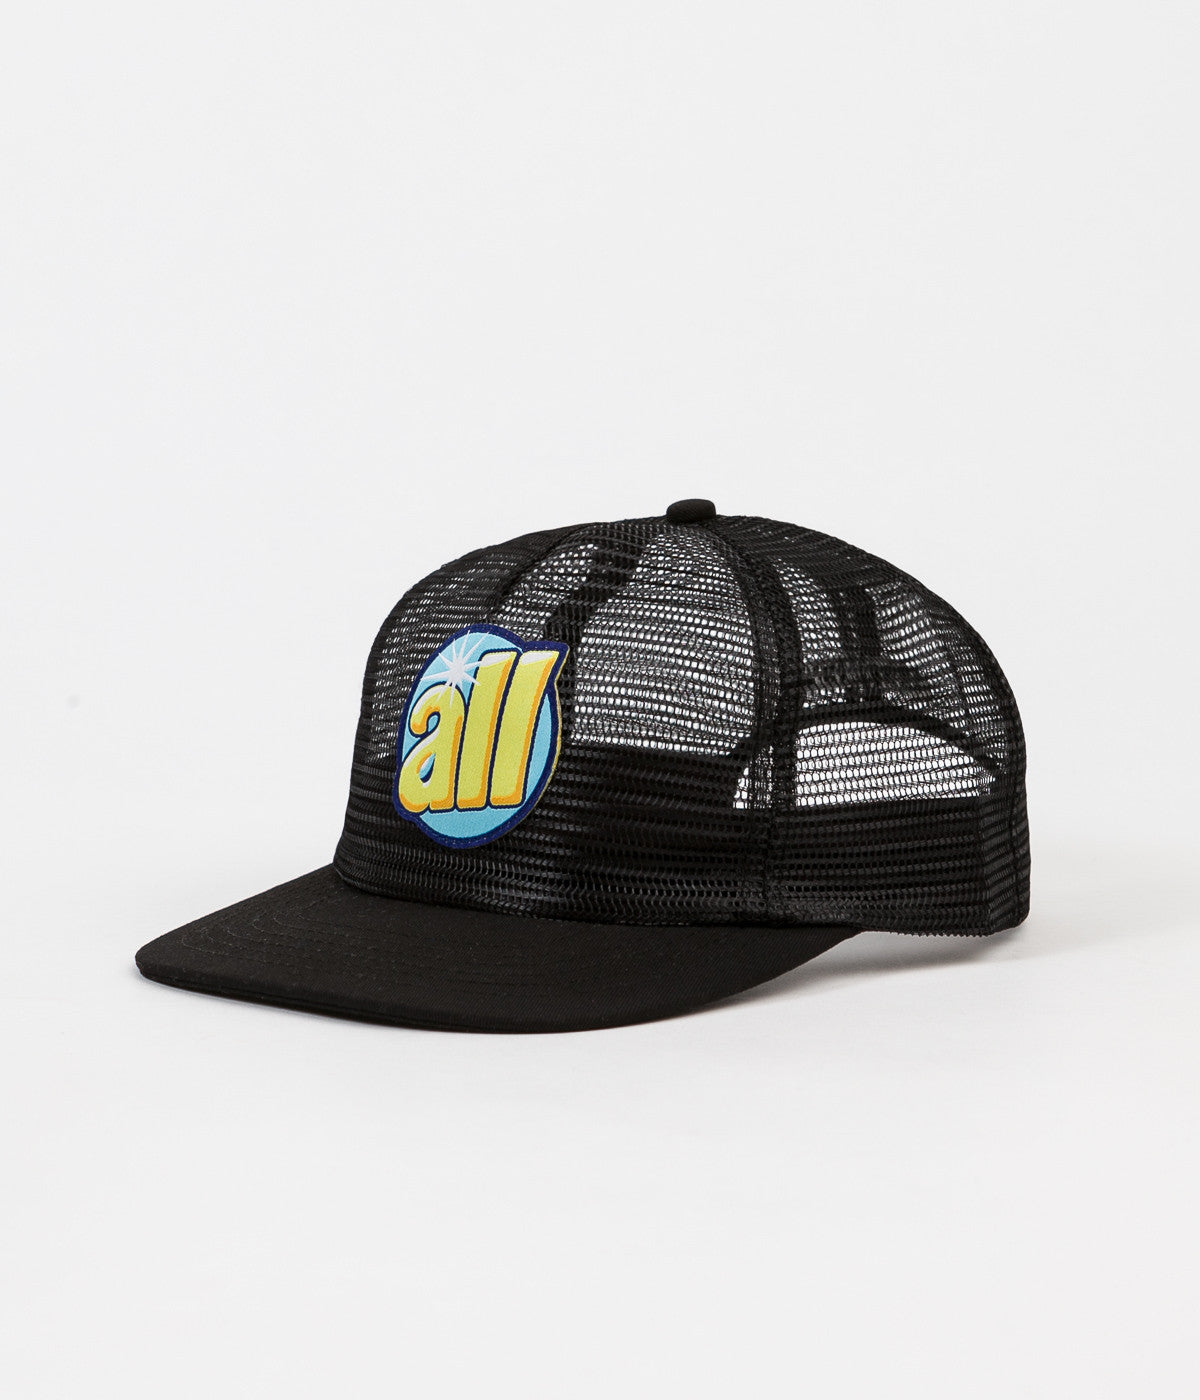 Alltimers All Cap - Black